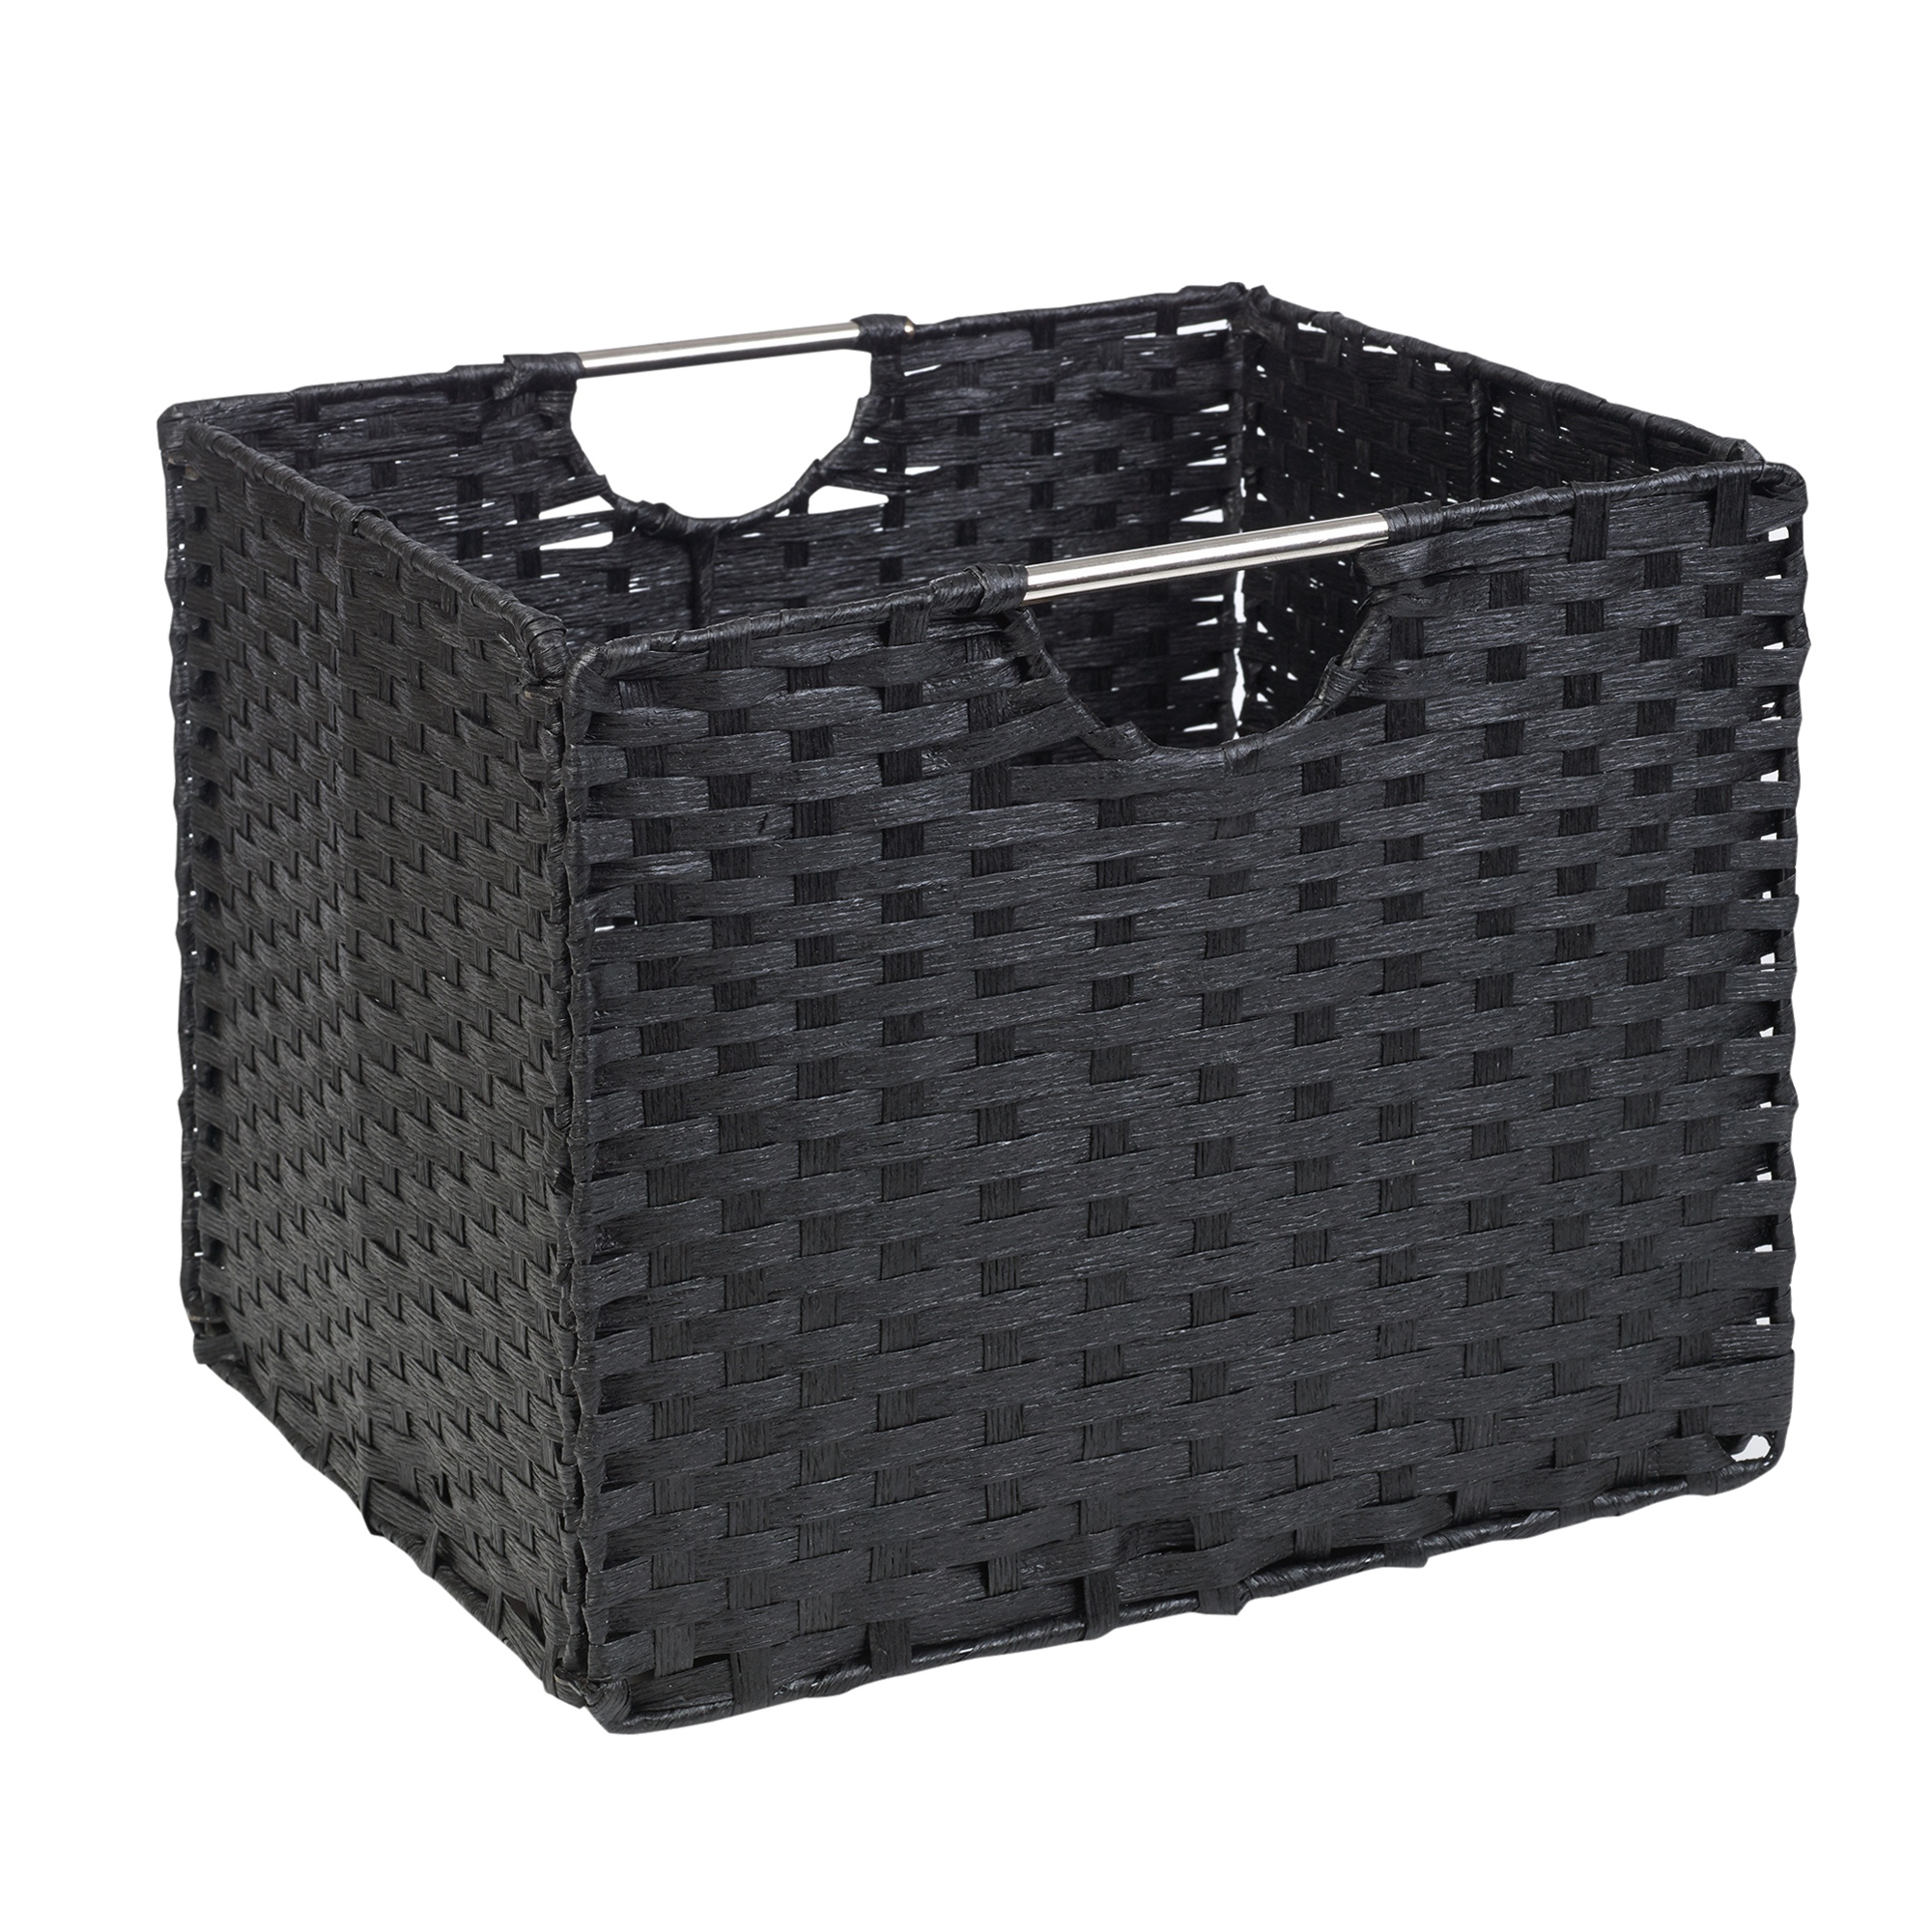 Woven Storage Baskets With Handles : Woven rattan square wicker storage basket with brushed